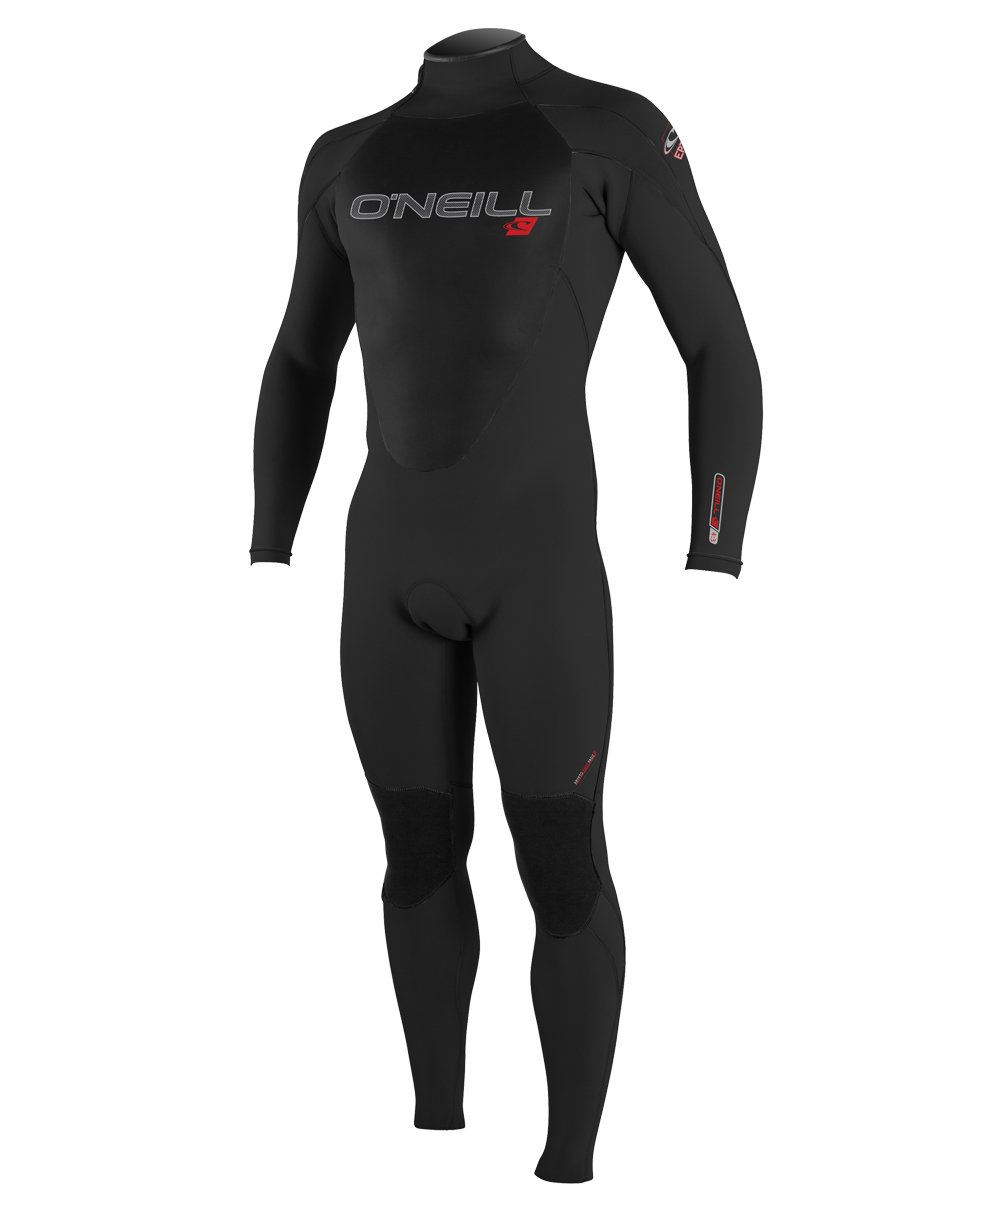 O'Neill Youth Epic 3/2mm Back Zip Full Wetsuit, Black, 4